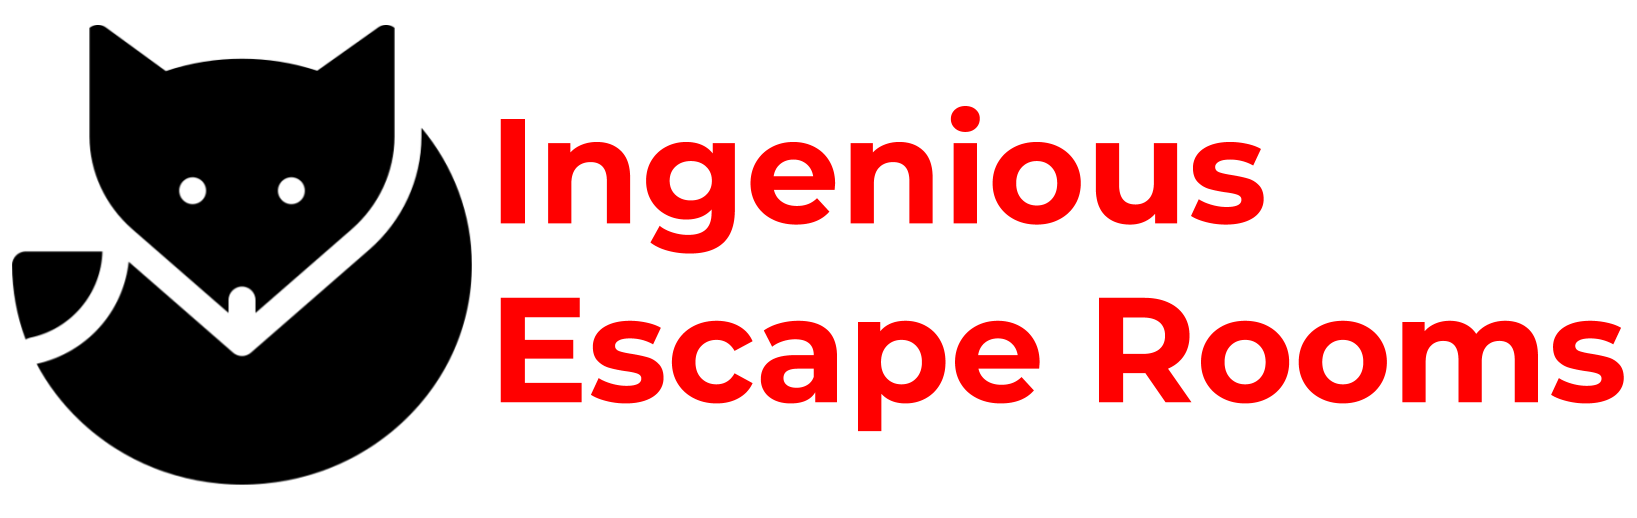 Ingenious Escape Rooms |   Untitled drawing – 2020-02-15T173114.274